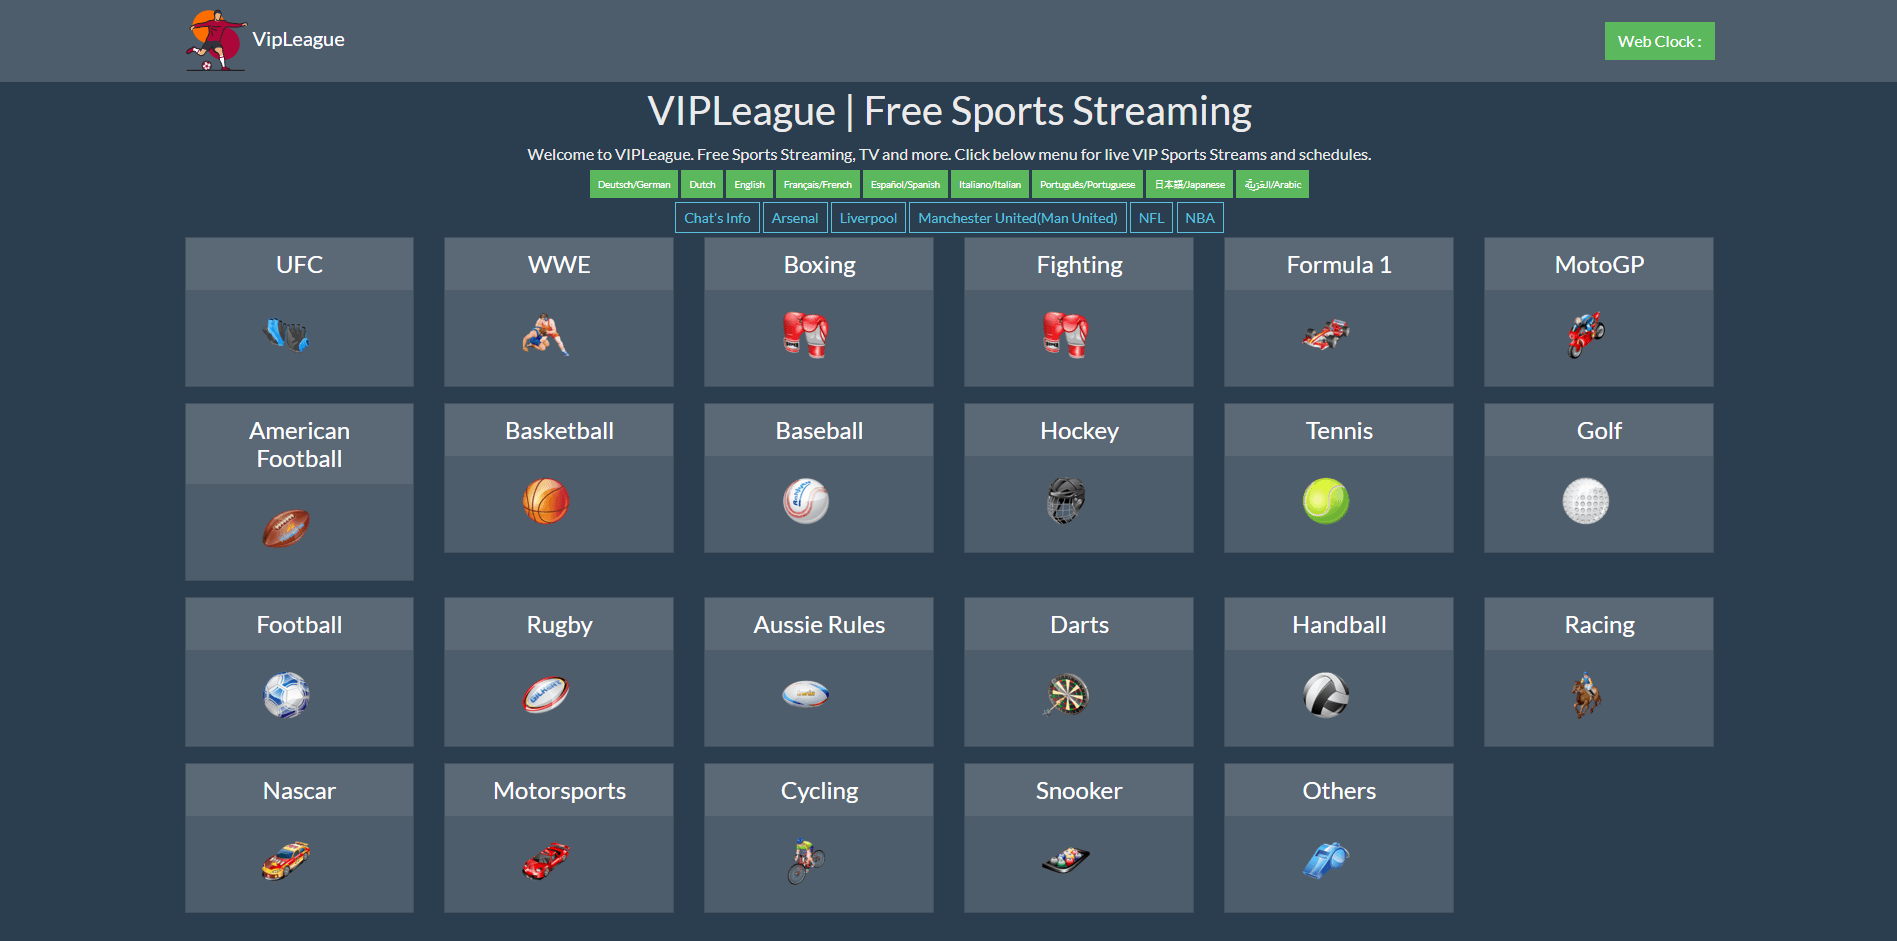 VIPLeague site